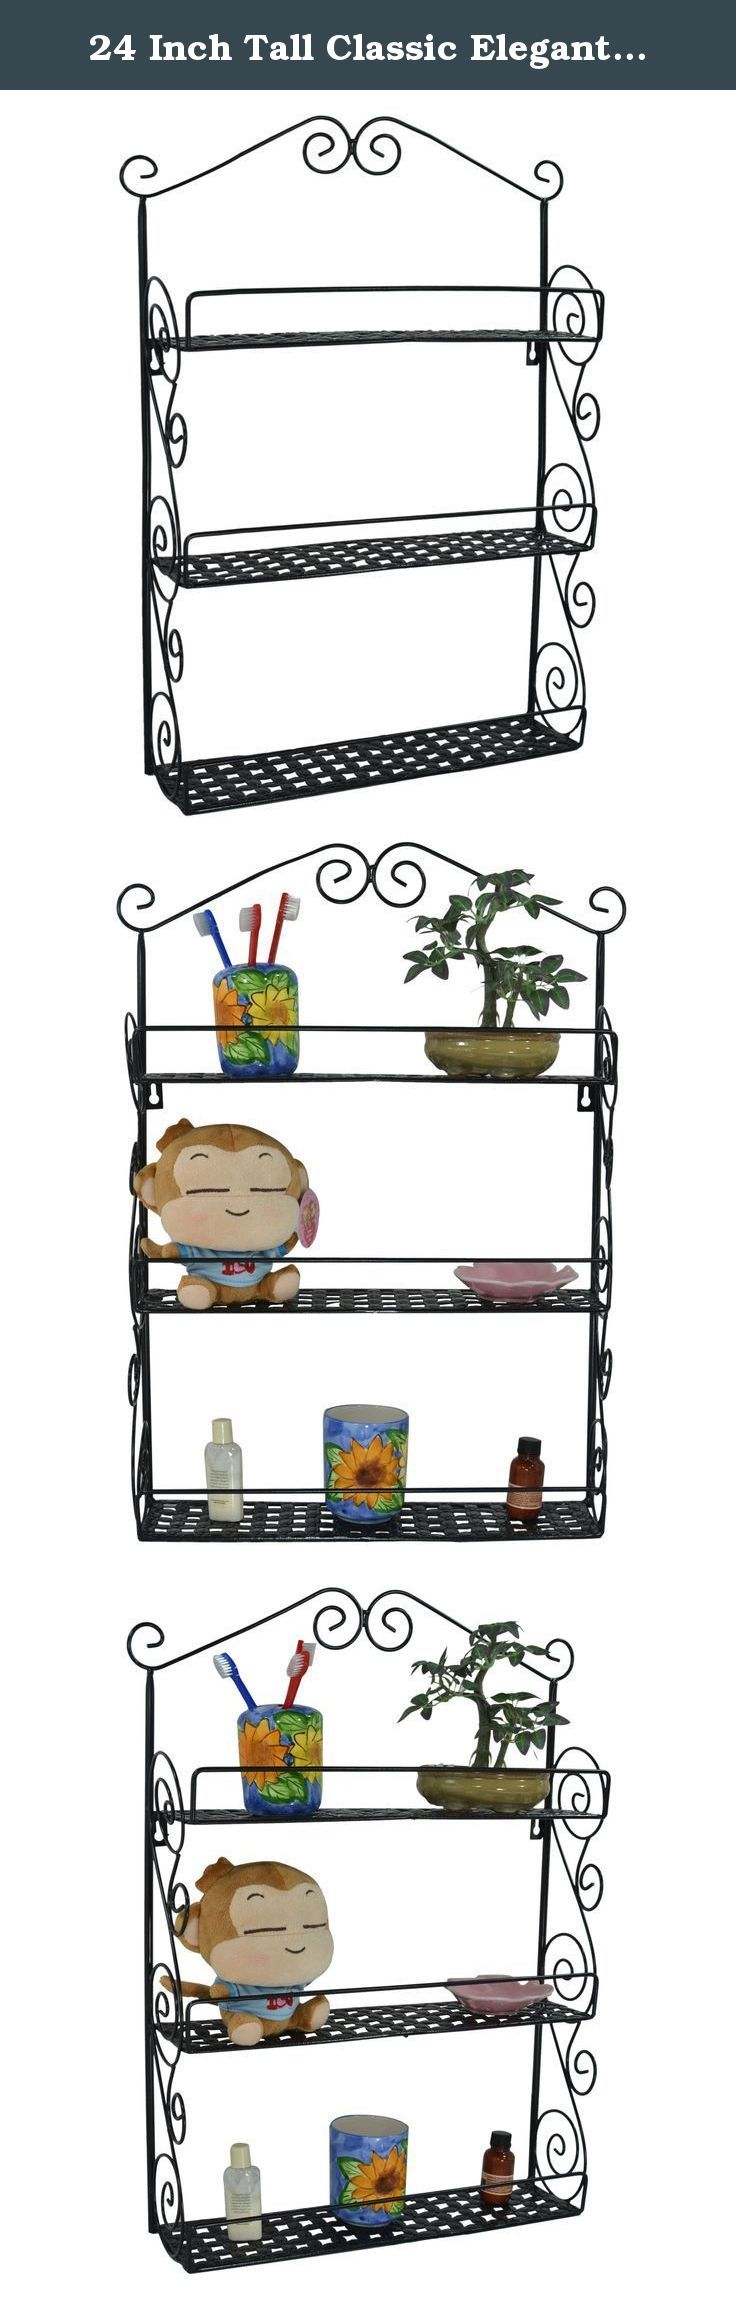 24 Inch Tall Classic Elegant Large Black Metal Wall Mounted Shelves Kitchen Spice Rack / Bathroom Accessory Storage Multi Purpose Organizer. Give your home a splash of sensible, stylish storage when you add this lovely spice rack to any space. Perfect for organizing and displaying not just spices but all manner of household items, this gorgeous wall-mounted shelf set is an invaluable storage solution for any space, including the kitchen, living room, bedroom, bathroom, and even the garage...